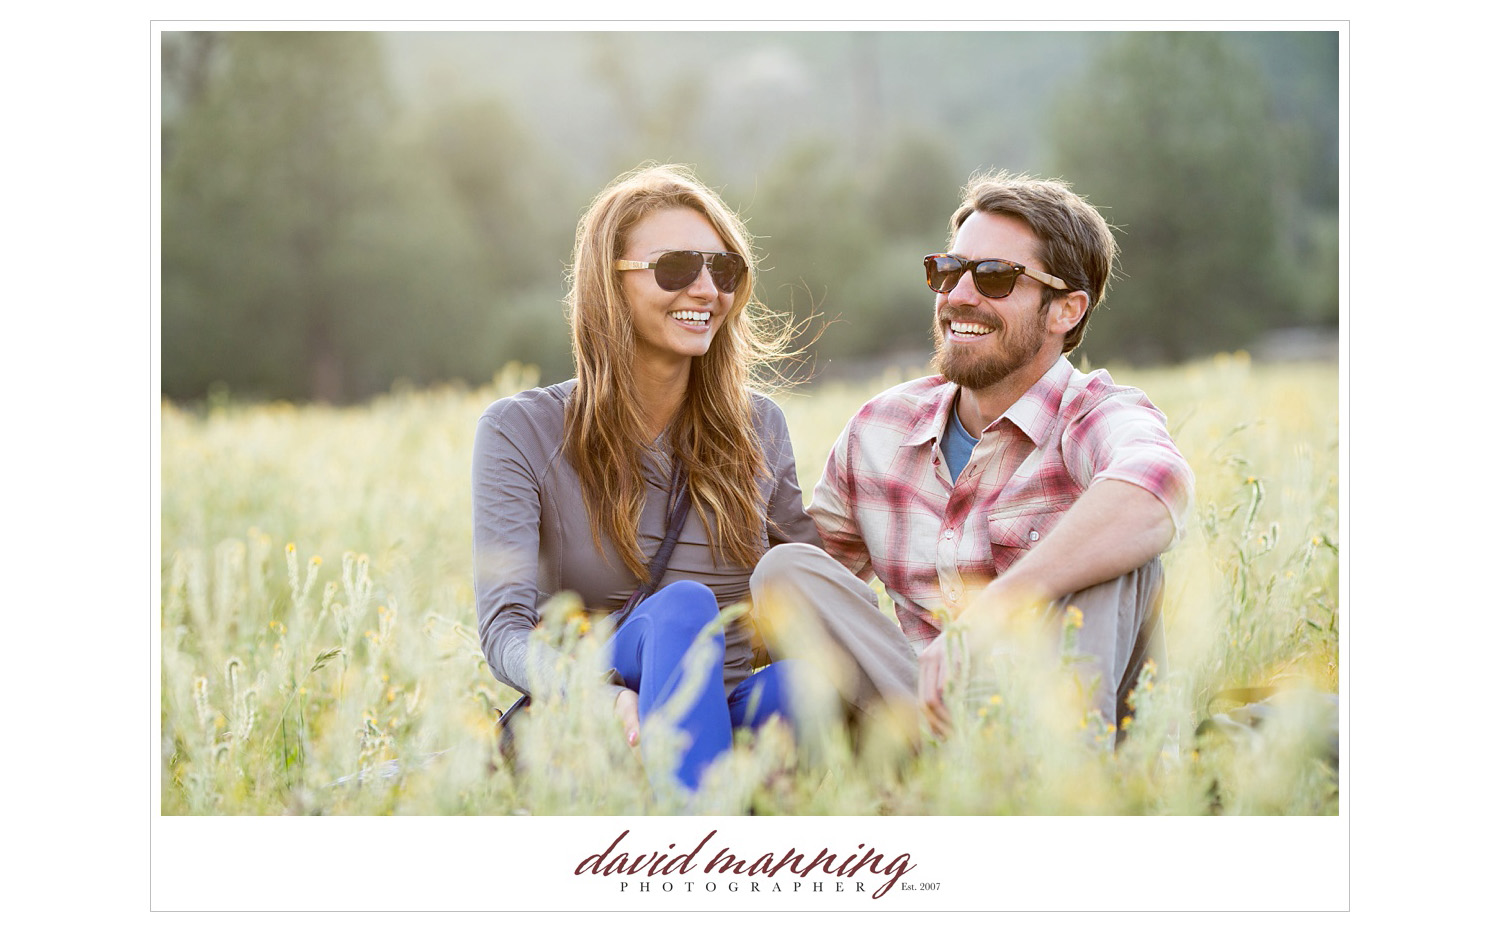 SOLO-Eyewear--Commercial-Editorial-Photos-David-Manning-Photographers-0035.jpg